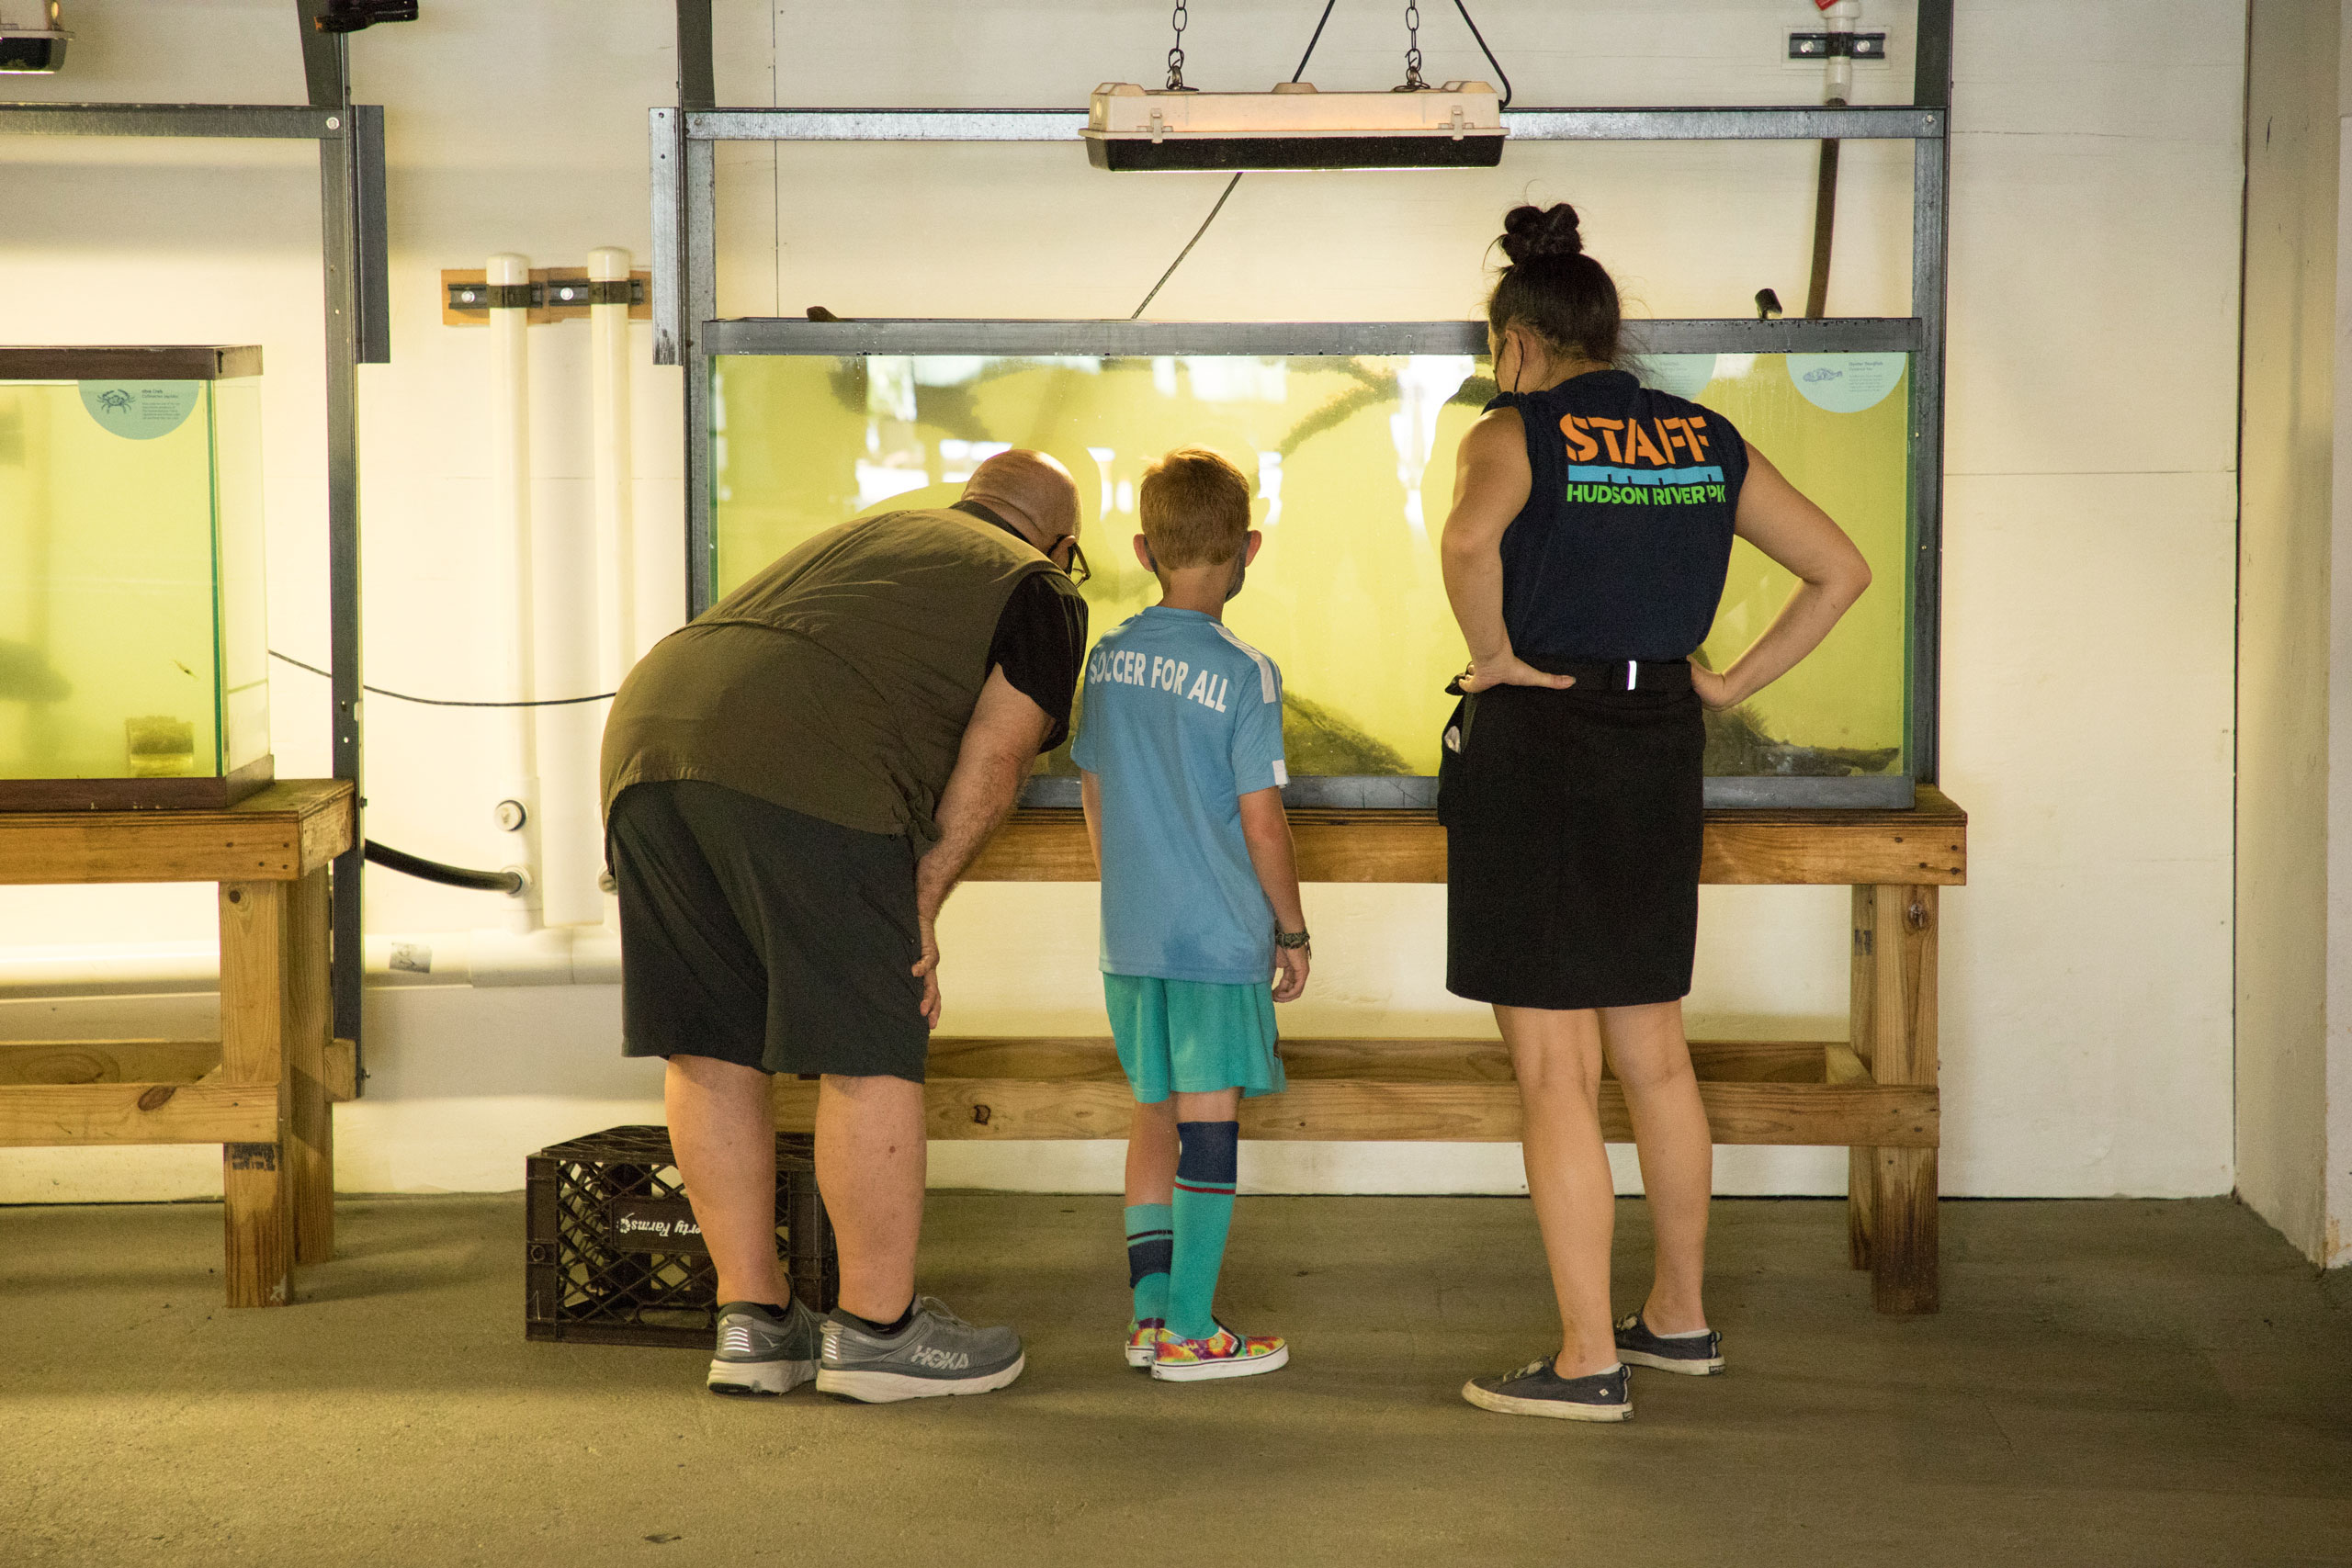 River Project staff looks on as man and son examine the wildlife in the Wetlab at Hudson River Park SUBMERGE